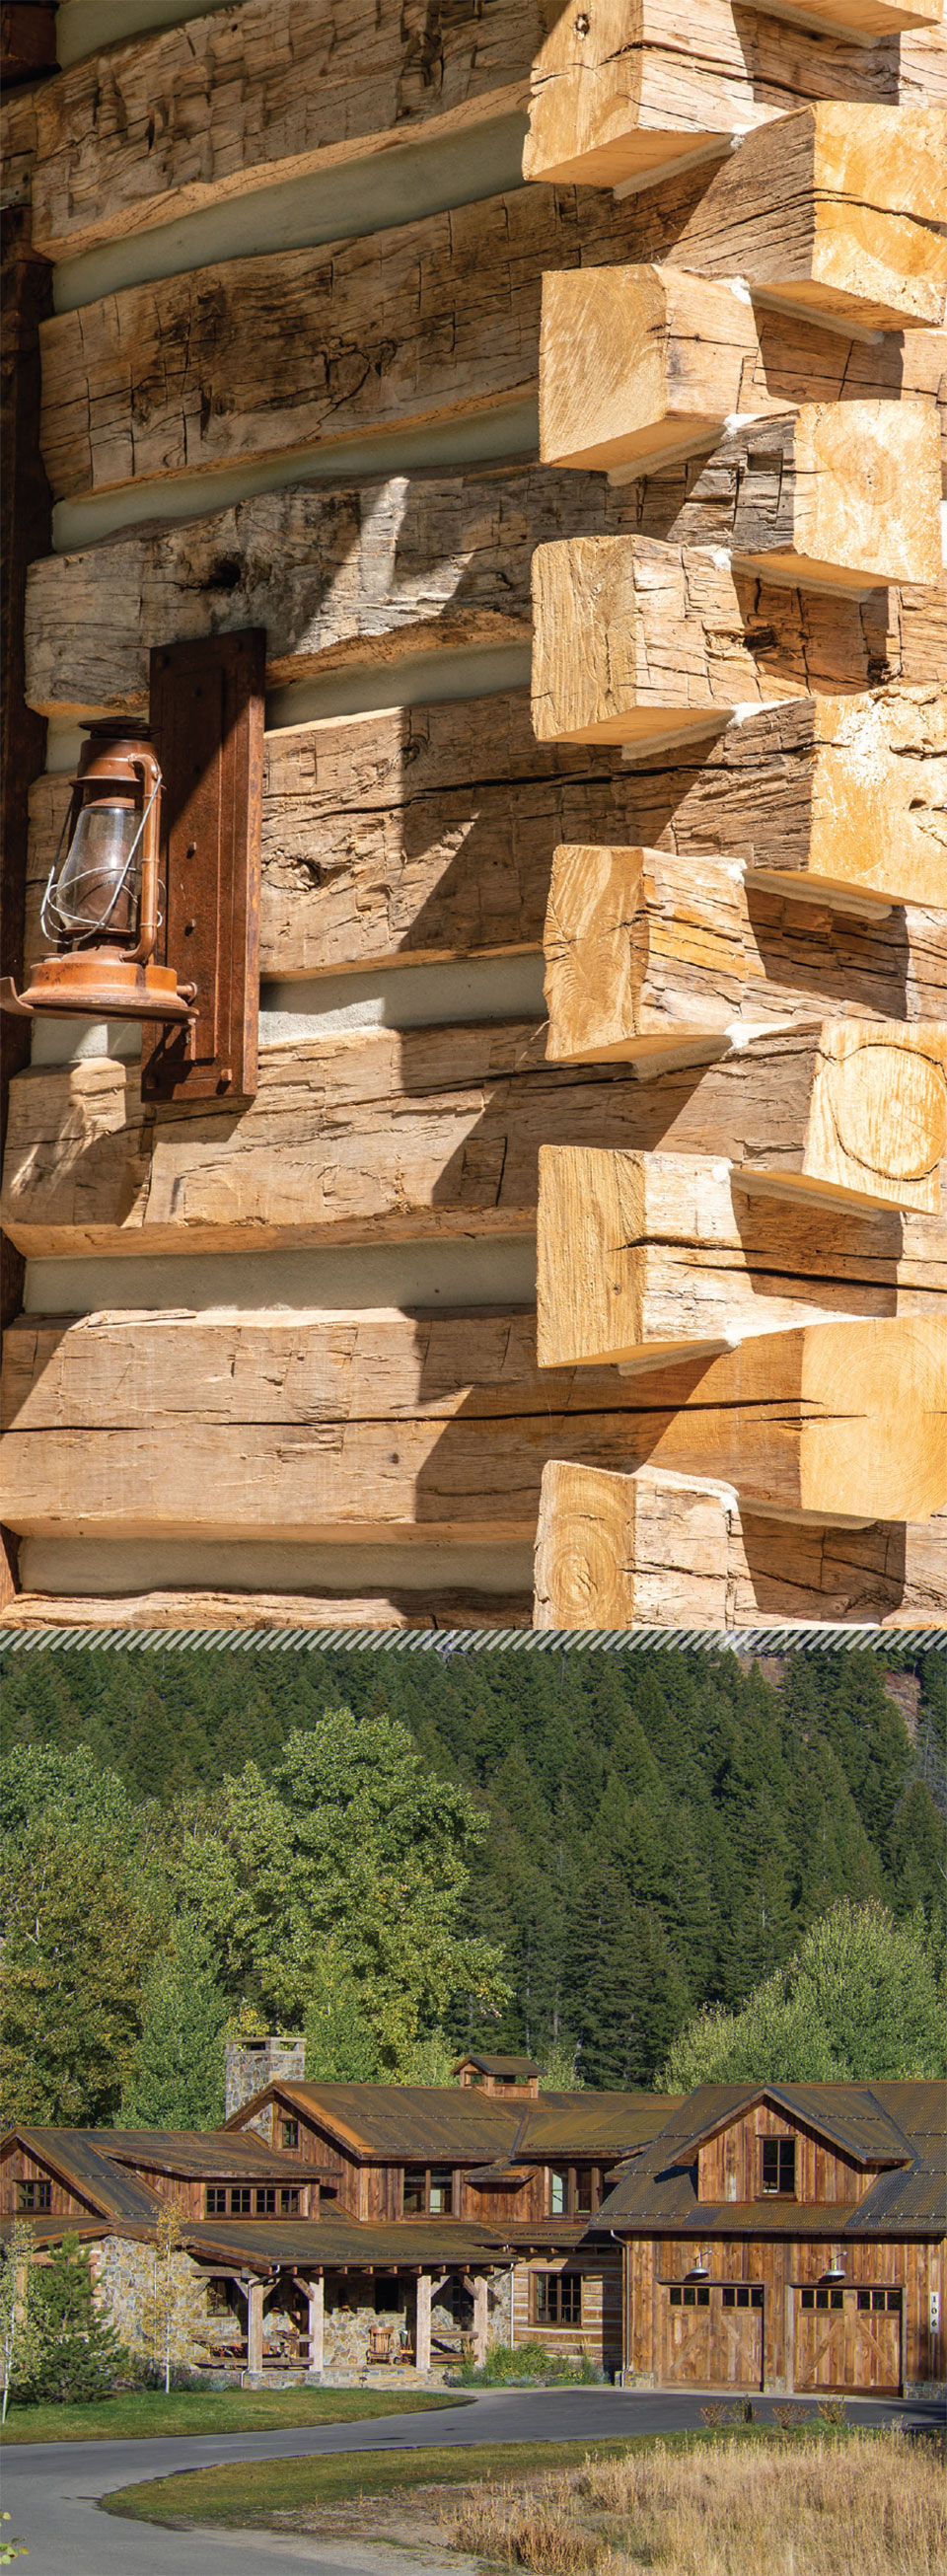 Working with Wood in the Modern West- Sun Valley Log House